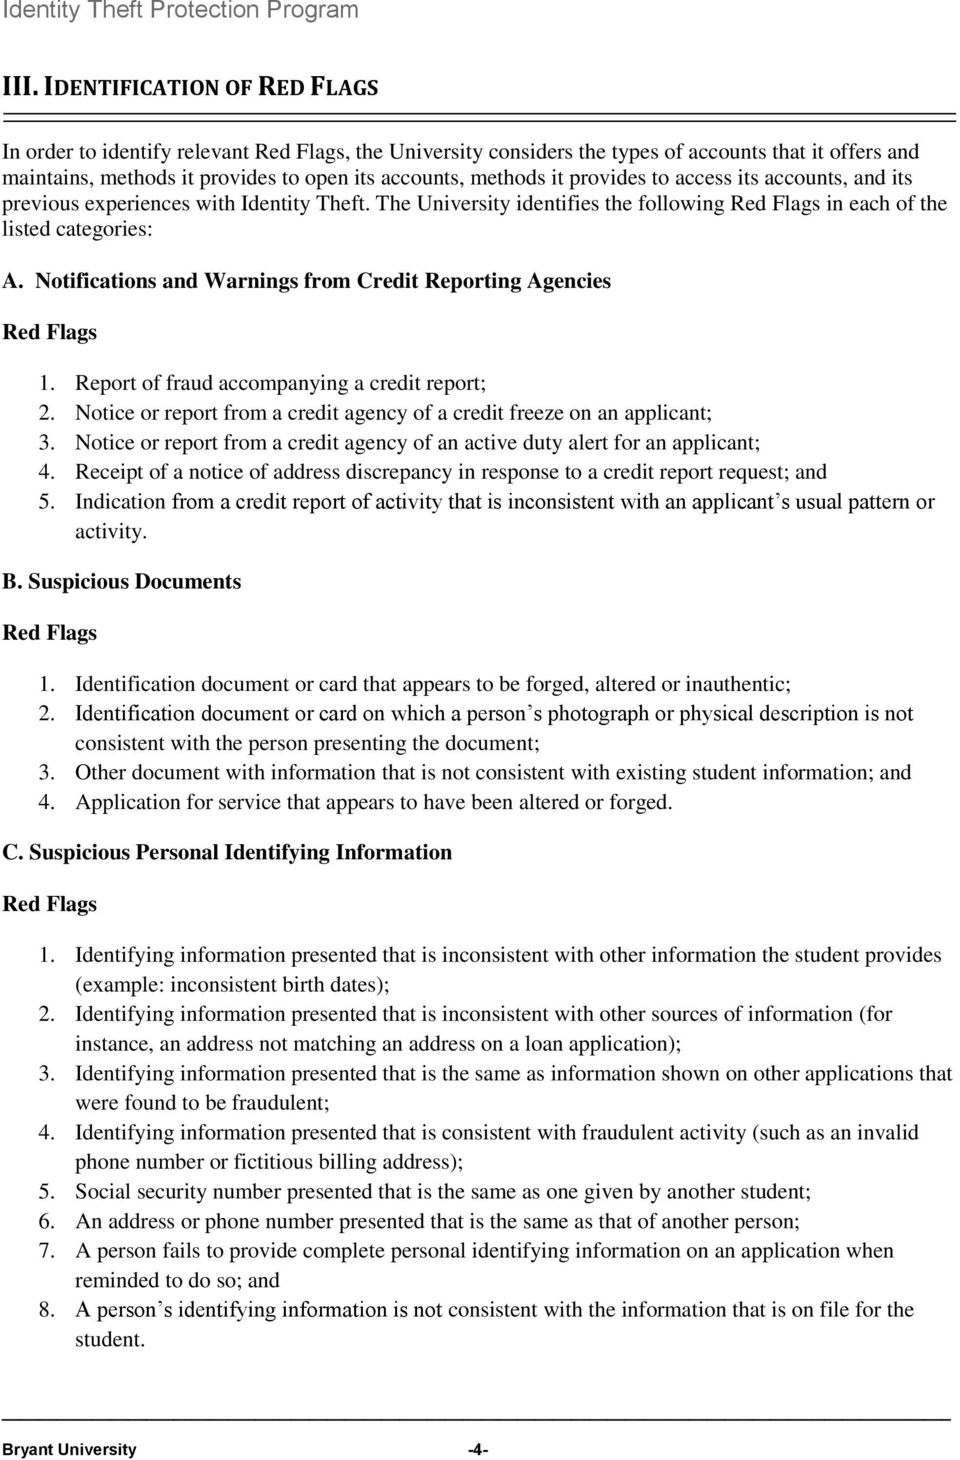 Notifications and Warnings from Credit Reporting Agencies 1. Report of fraud accompanying a credit report; 2. Notice or report from a credit agency of a credit freeze on an applicant; 3.